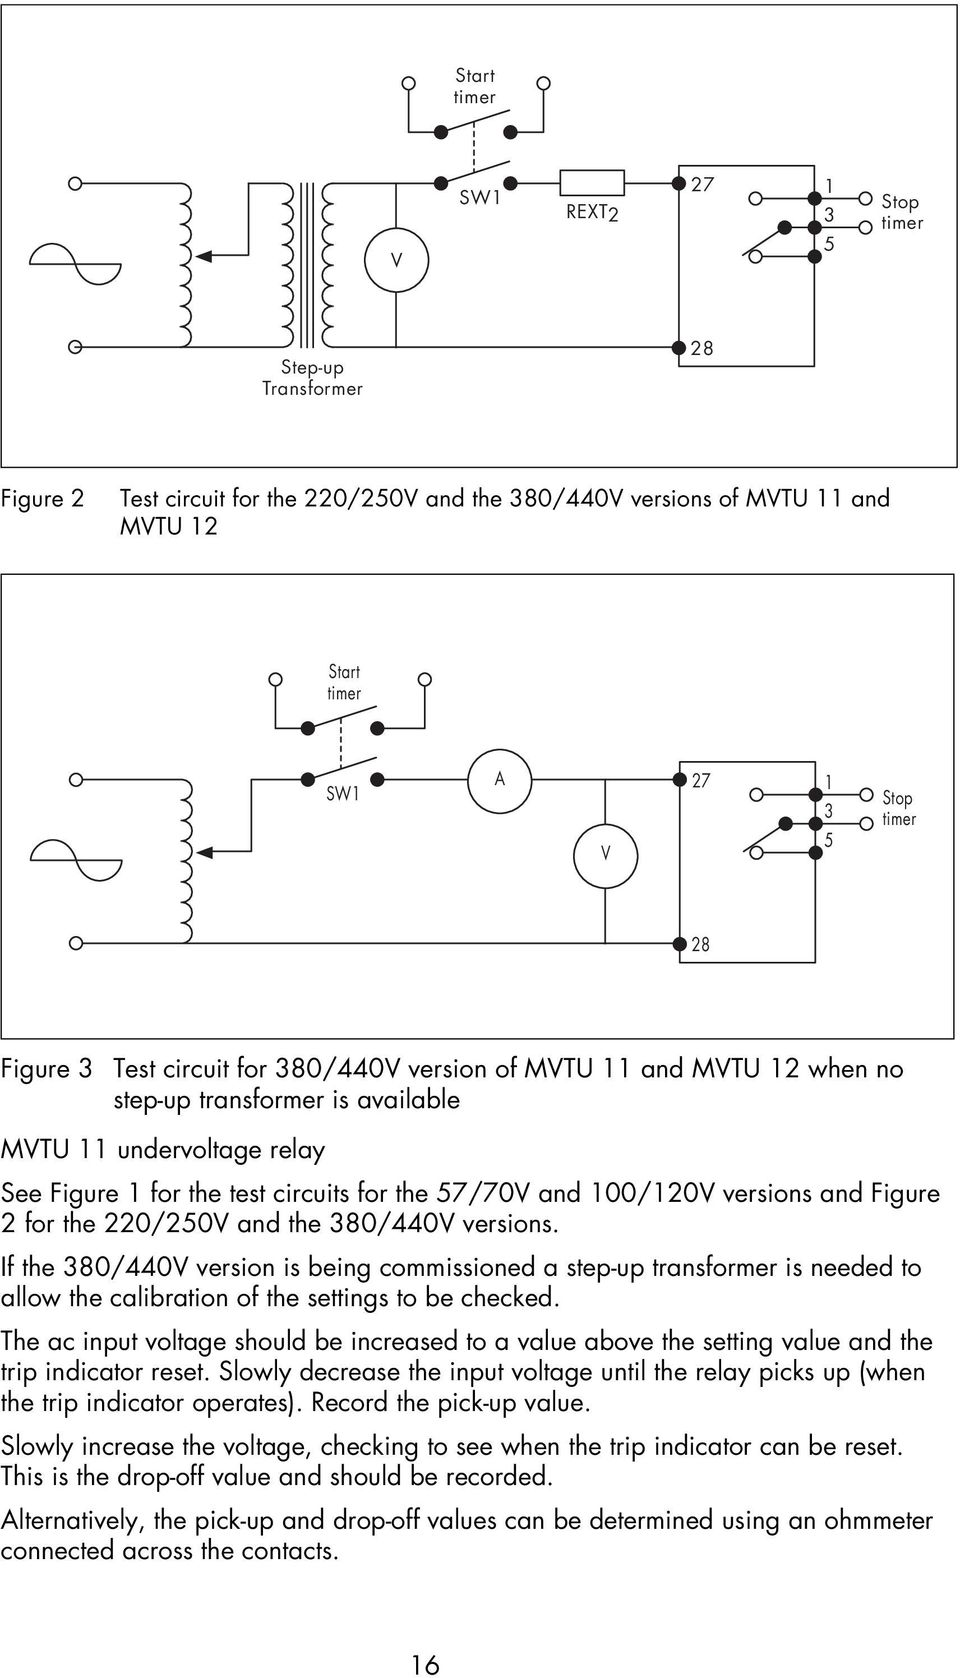 Service Manual Type Mvtu Definite Time Delayed Relays Pdf Relay Coil Pickup Voltage Versions And Figure 2 For The 220 250v 380 440v